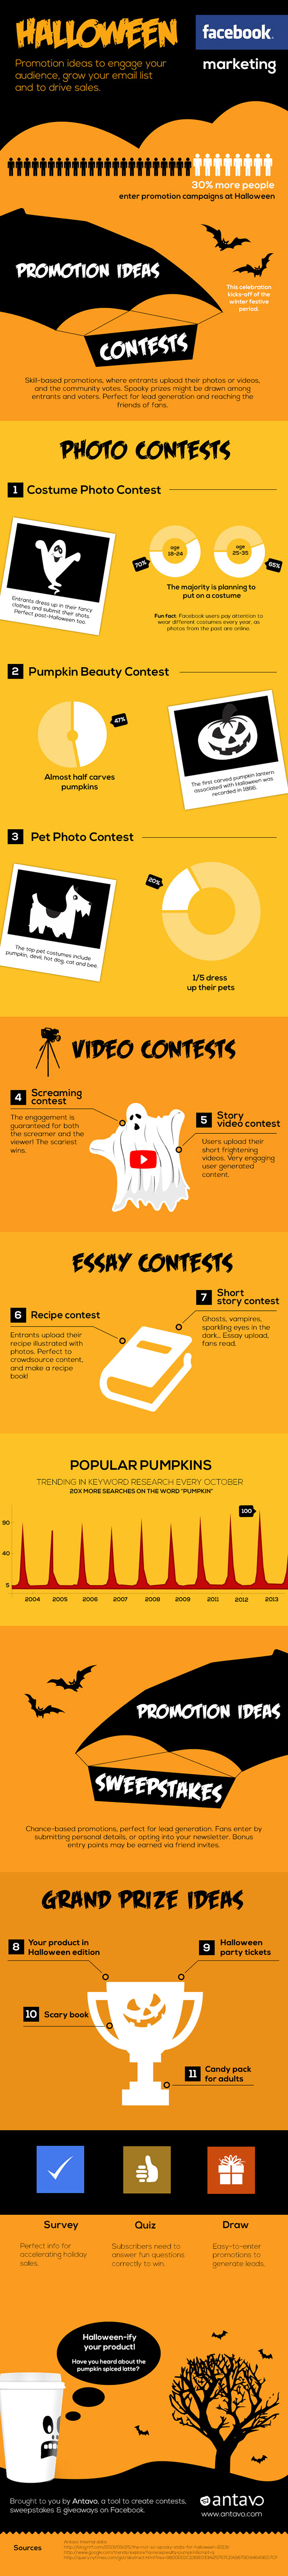 Make a Killing With These Halloween Themed Facebook Marketing Ideas